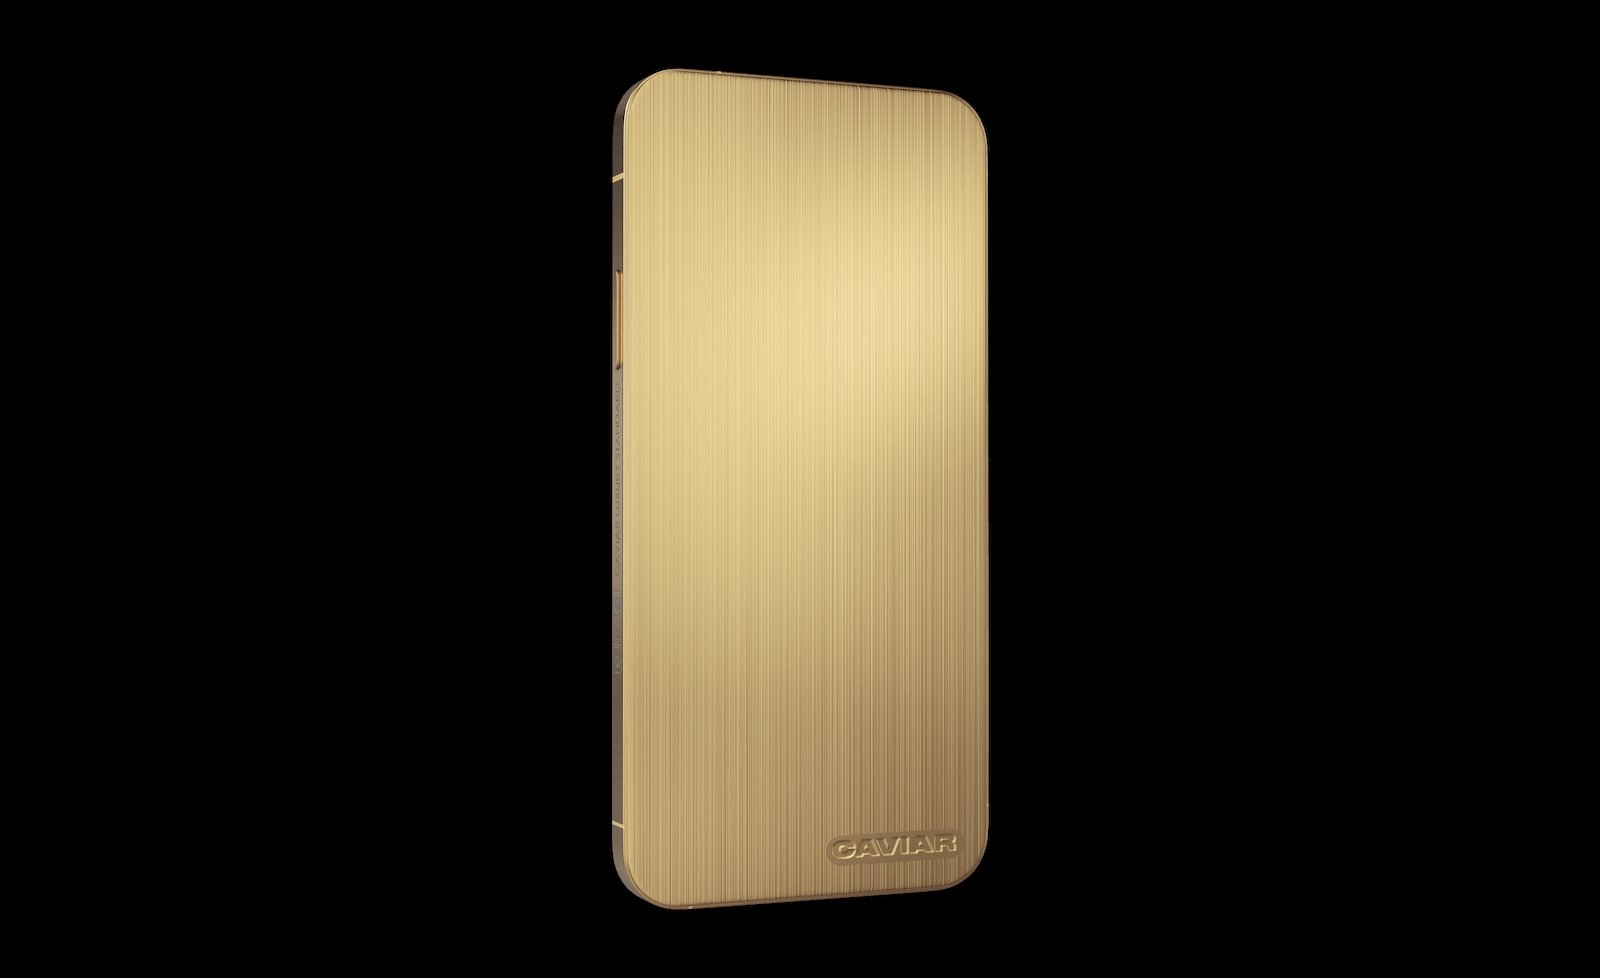 Caviar iPhone 12 Pro Stealth 5 1600x978x